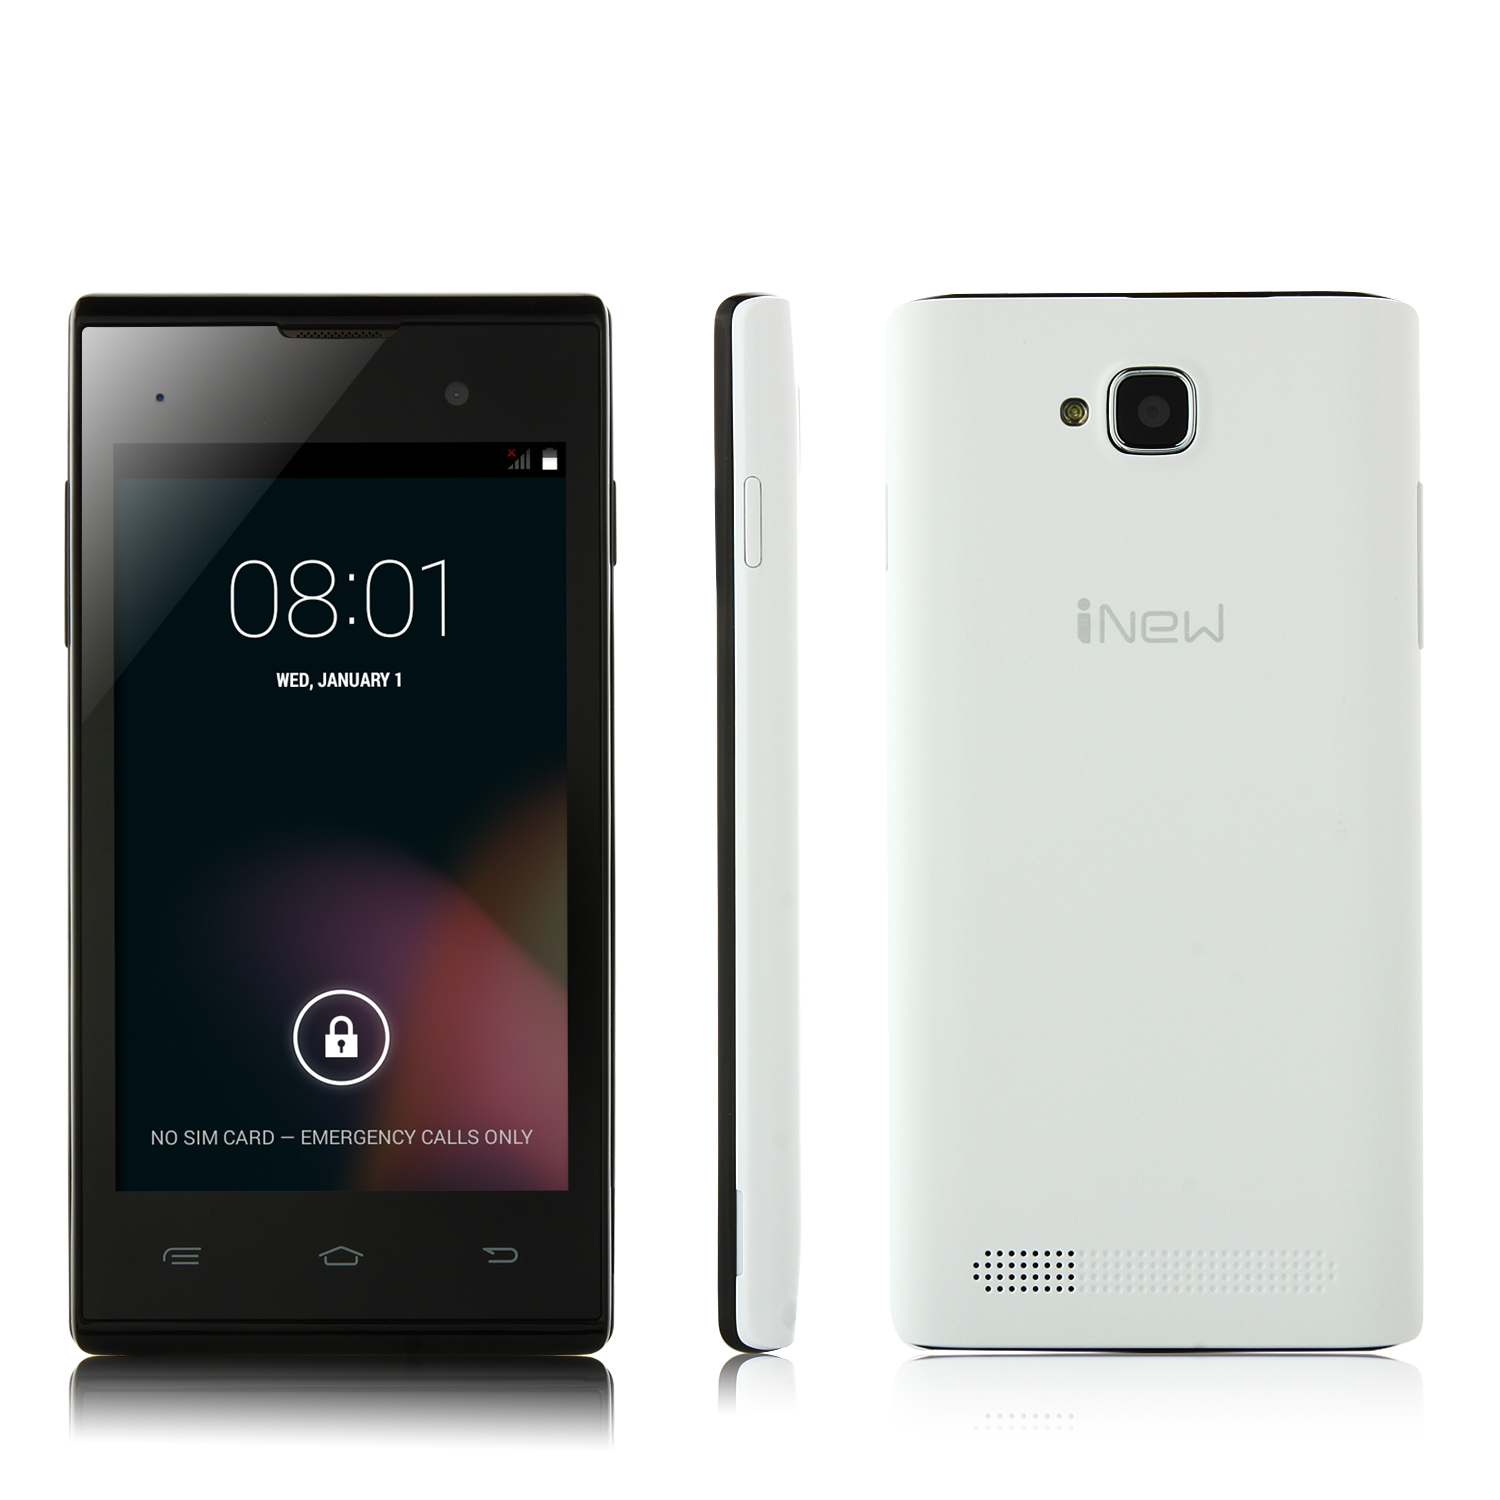 iNew U1 Smartphone Android 4.4 MTK6572M Dual Core 4.0 Inch 3G GPS White